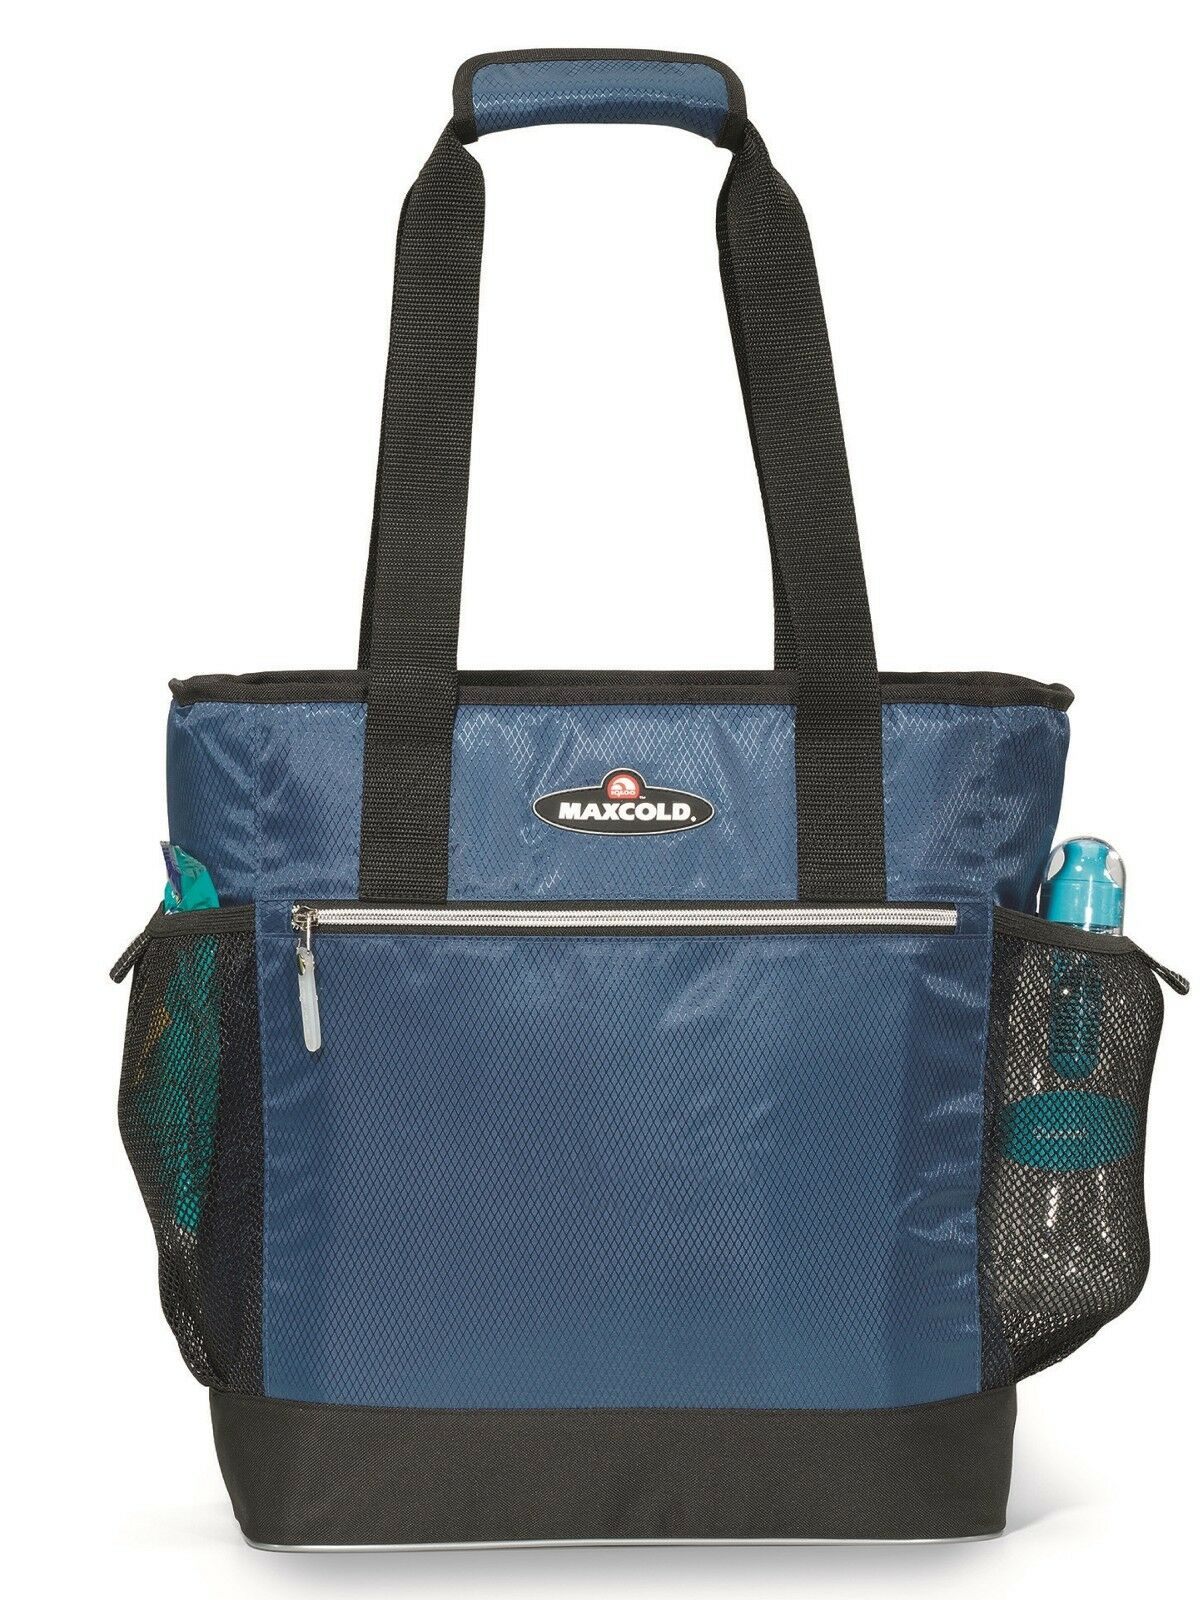 Igloo MaxCold™ Insulated  Leak Resistant 24 Can bluee Cooler Tote Bag - New  enjoy 50% off